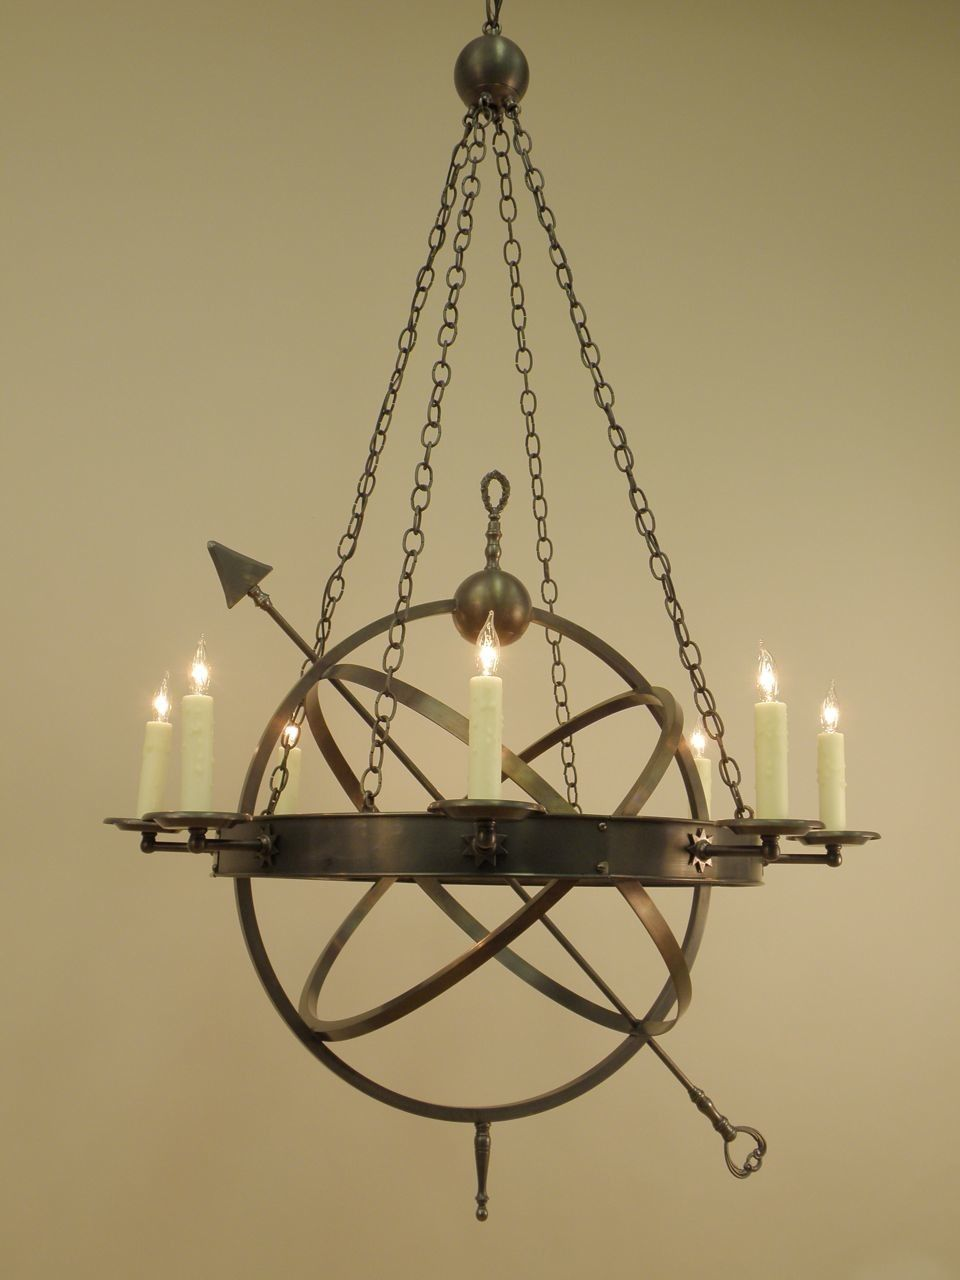 Beautiful vermont made colonial reprodution lighting from authentic beautiful vermont made colonial reprodution lighting from authentic designs the custom made armillary chandelier in arubaitofo Image collections